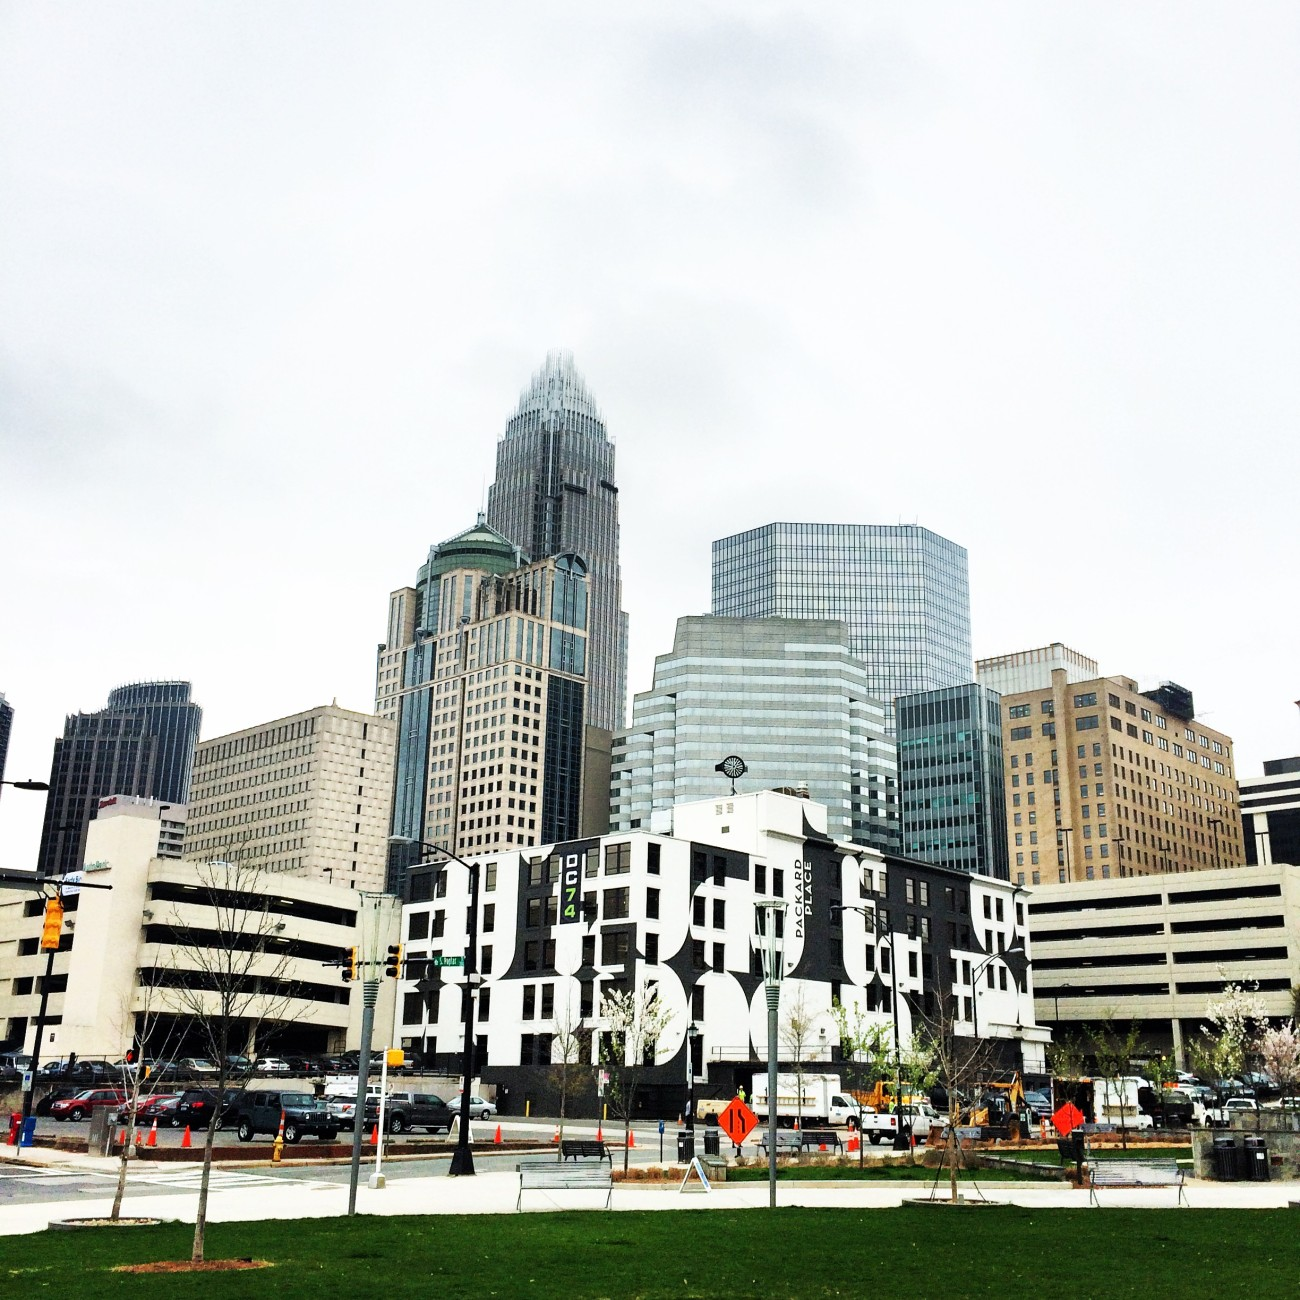 Romare Bearden Park becomes a German-style Christmas Village next week. A comprehensive guide to the festivities